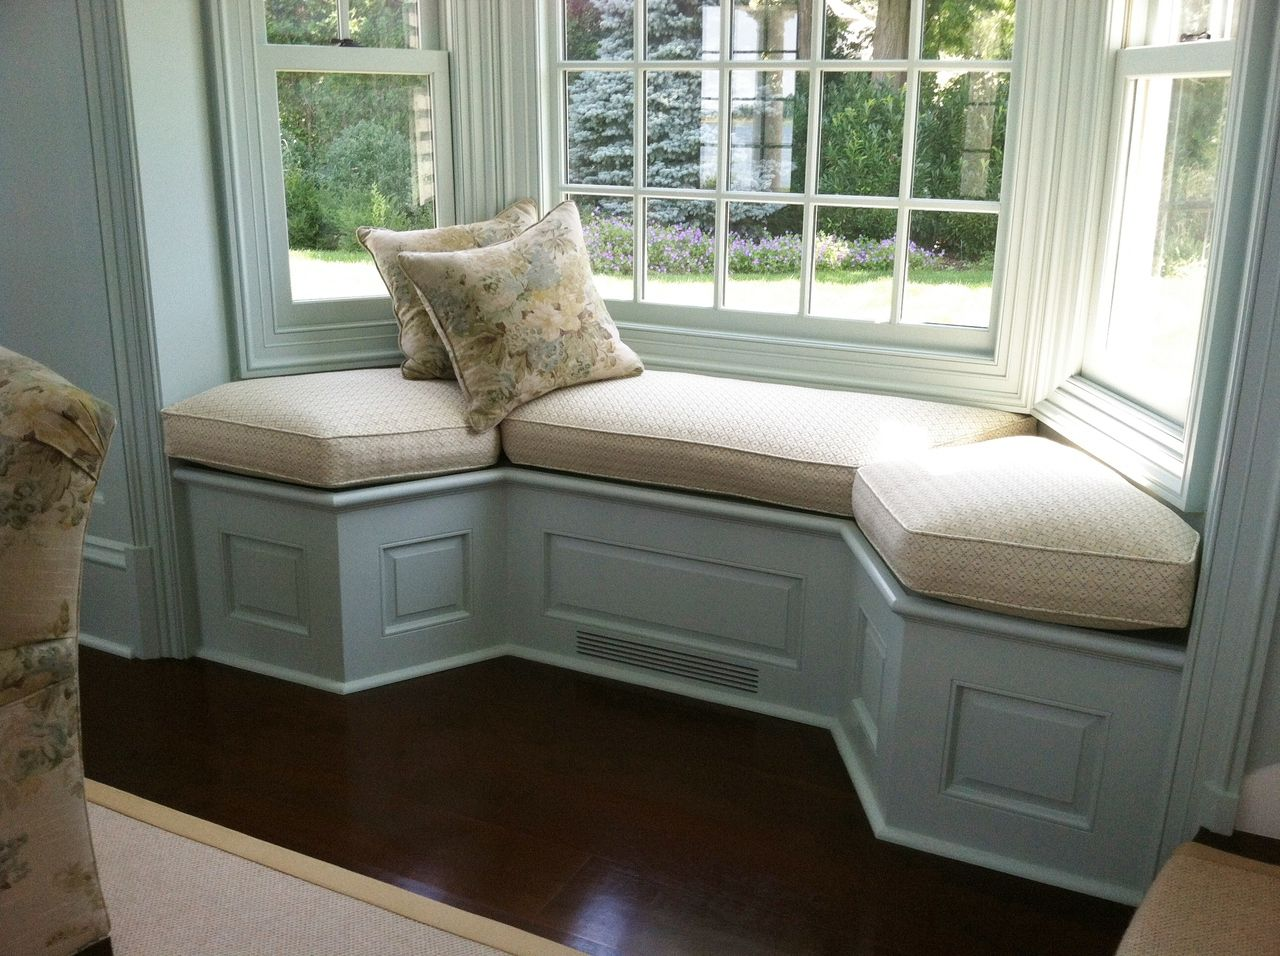 Kitchen bay window exterior  country window seat cushion  bedrooms  pinterest  home window